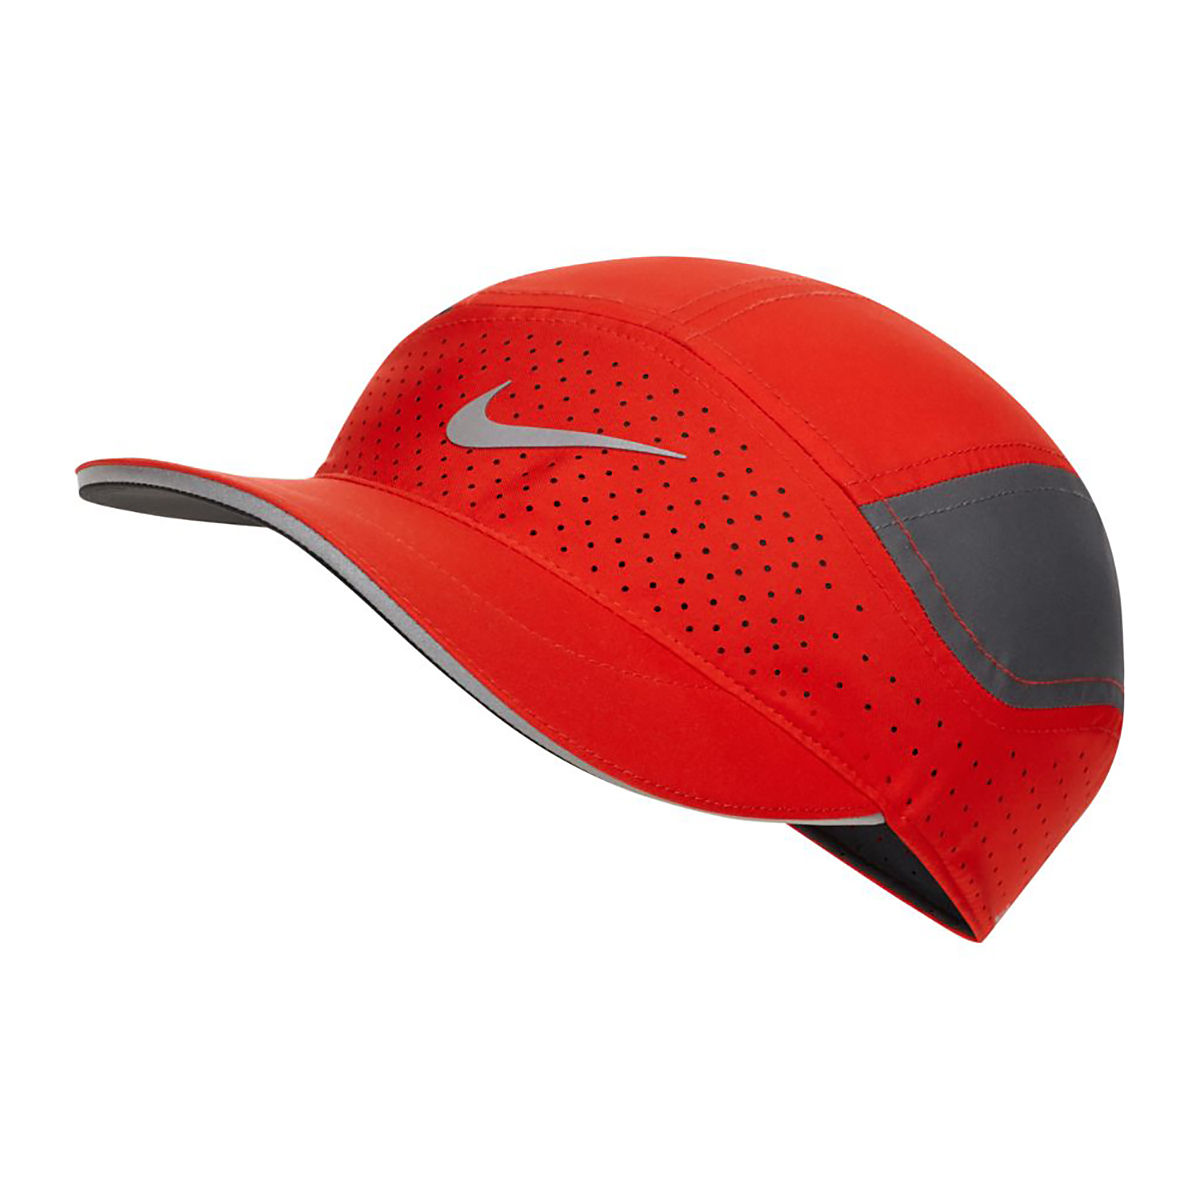 Nike AeroBill Tailwind Running Cap - Color: Red, Red, large, image 1